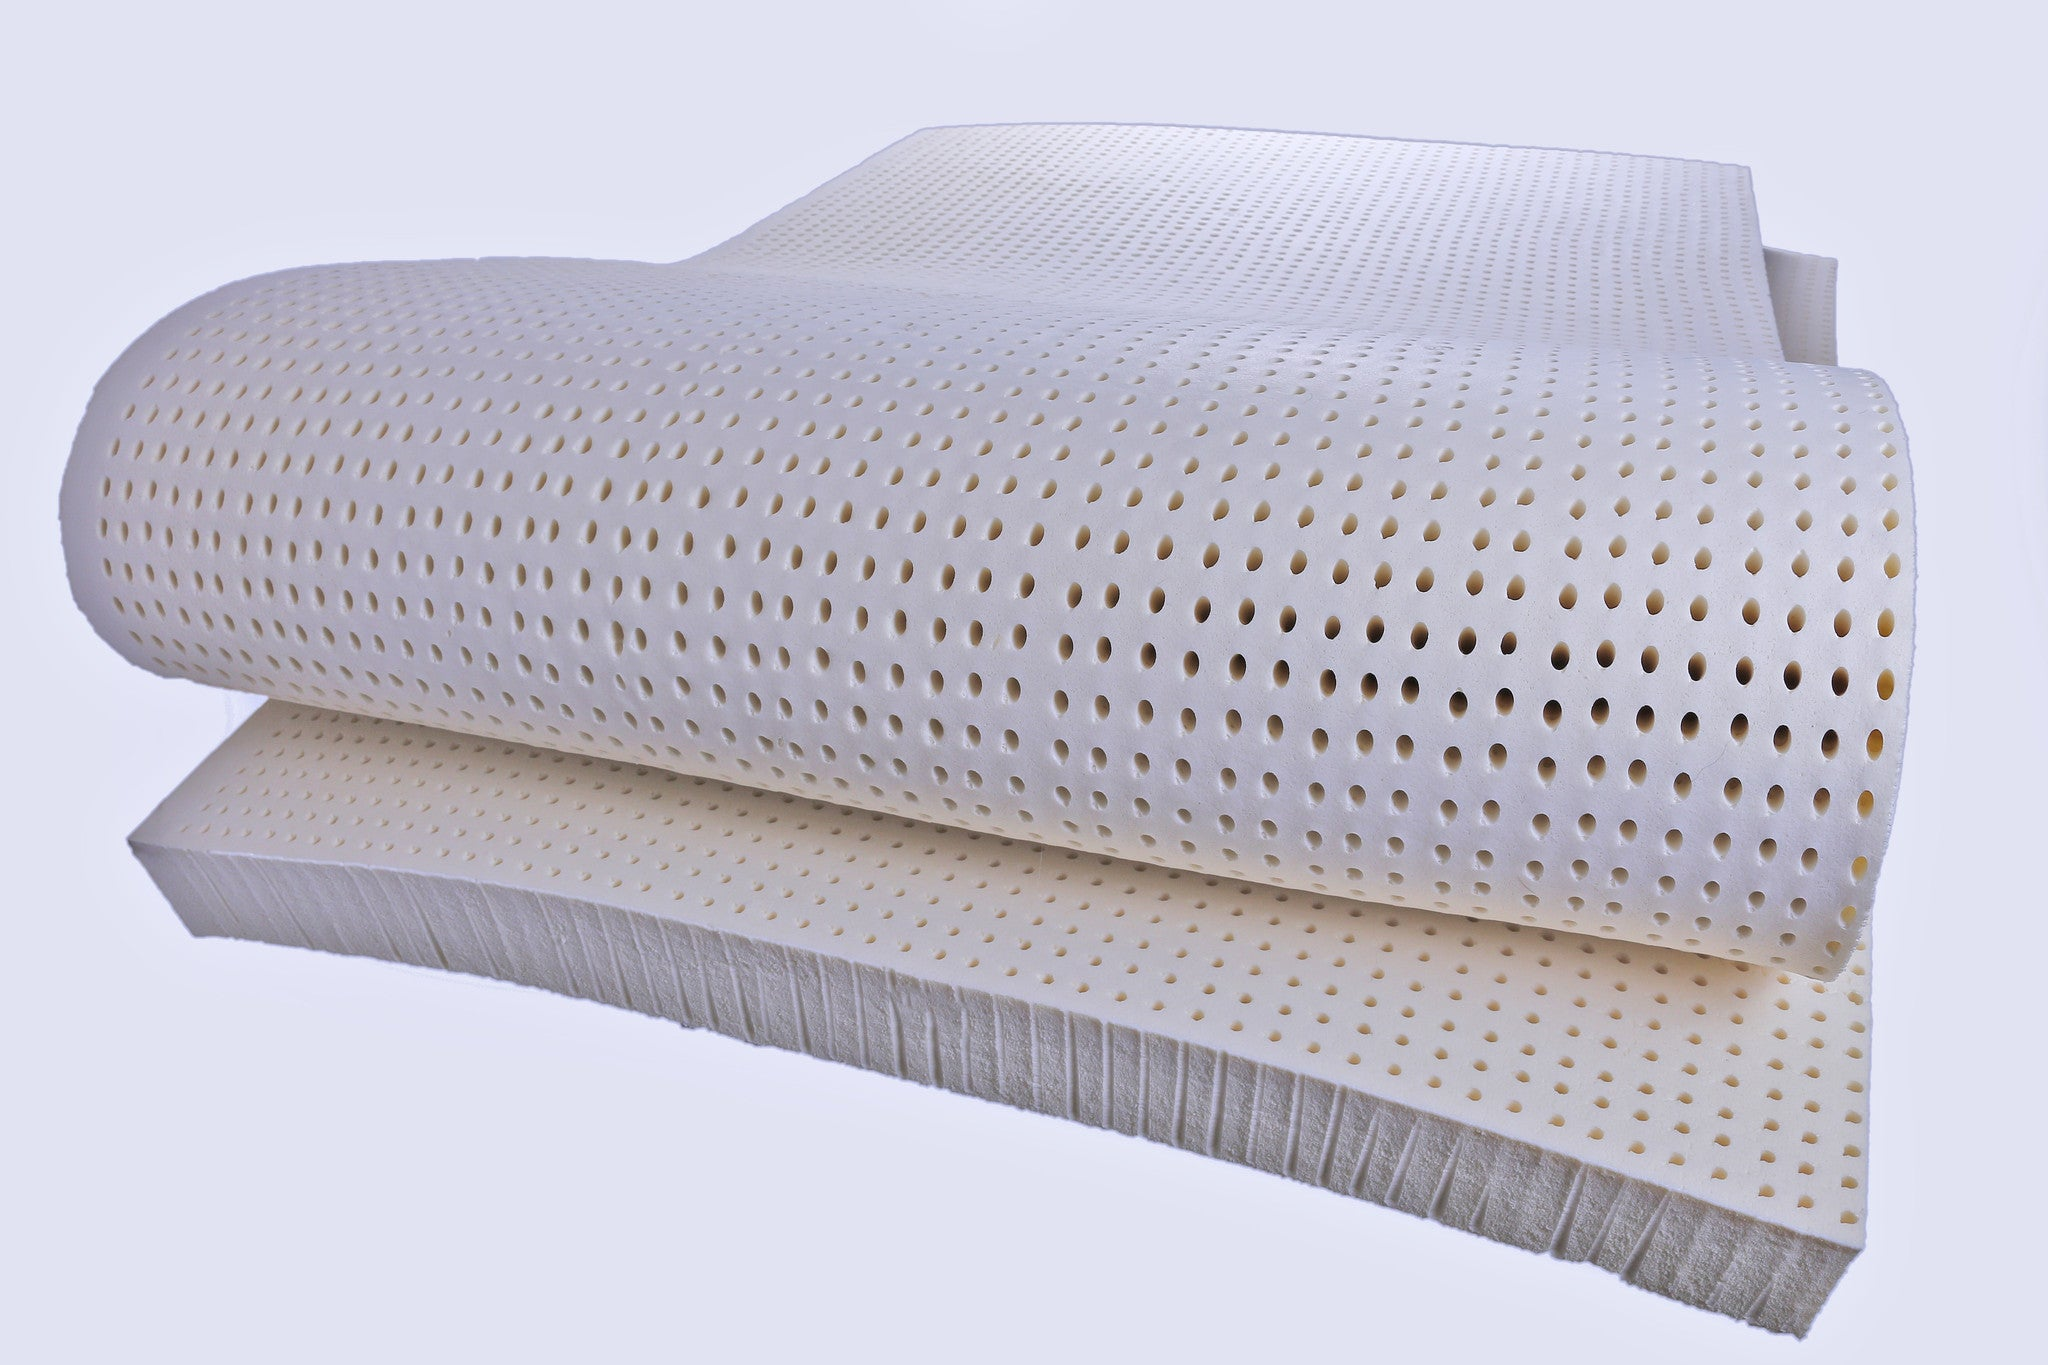 pillow mattress sleep with product foam gel topper memory cover nav inch innovations toppers